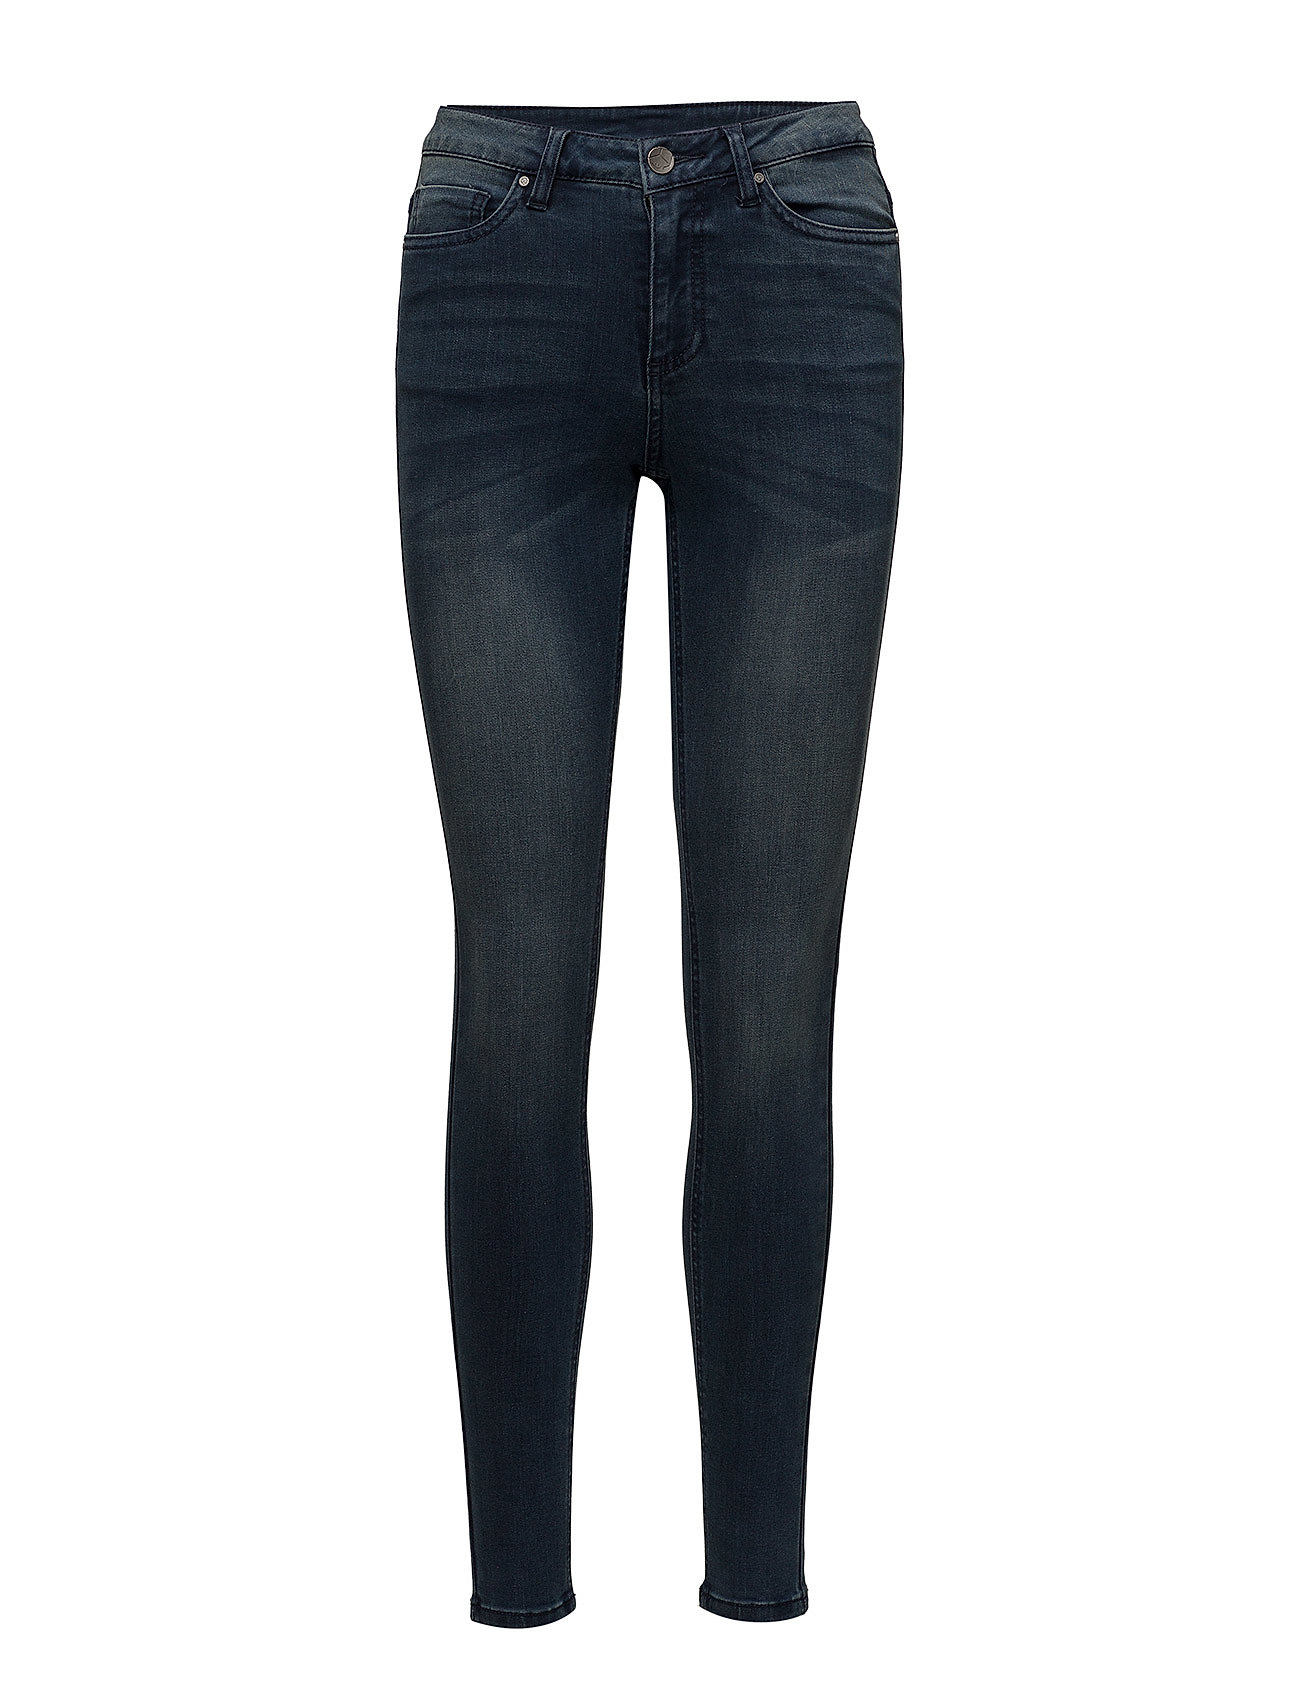 Kaffe Grace Jeans - DEEP WELL DENIM